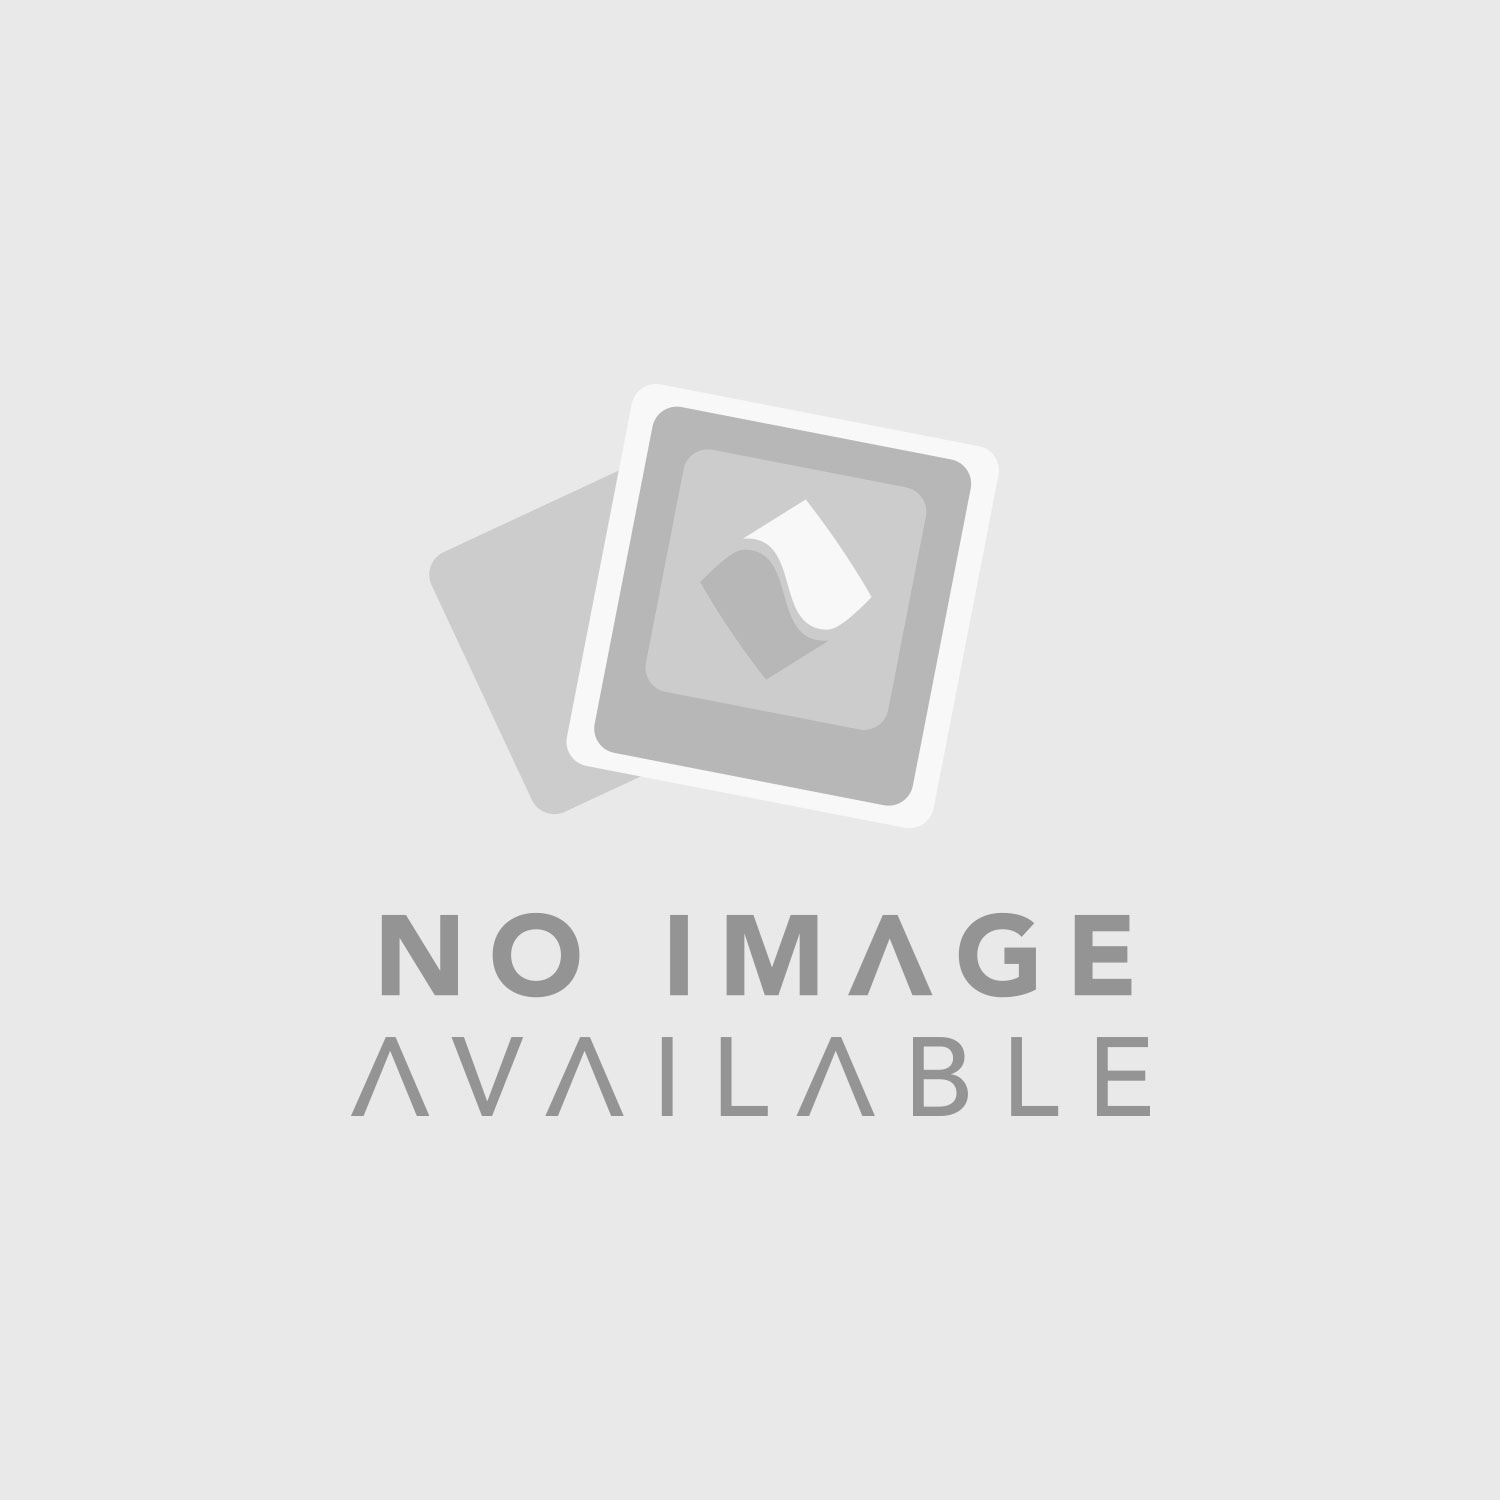 Doug Fleenor Gizmo Test Box